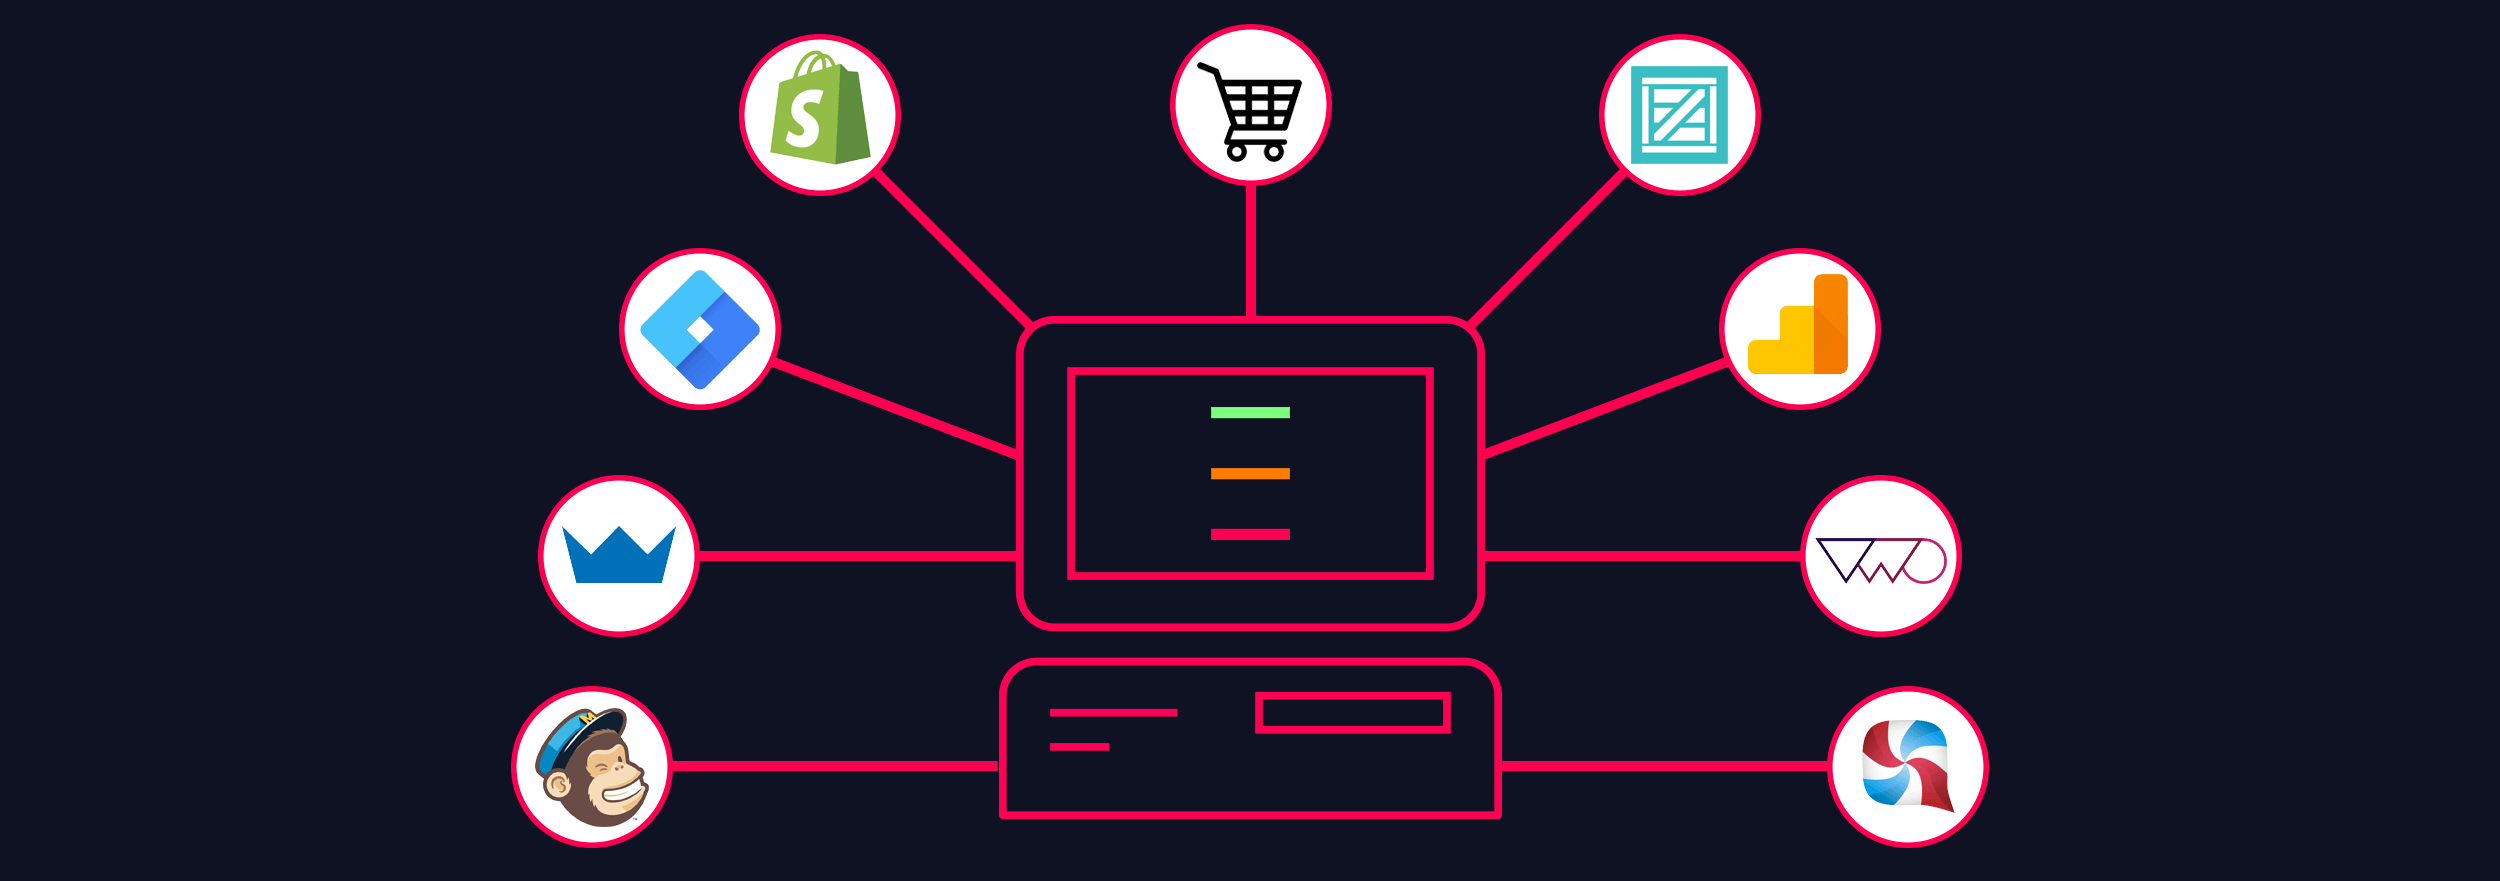 8 Essential Tools You Need to Grow a Booming eCommerce Business